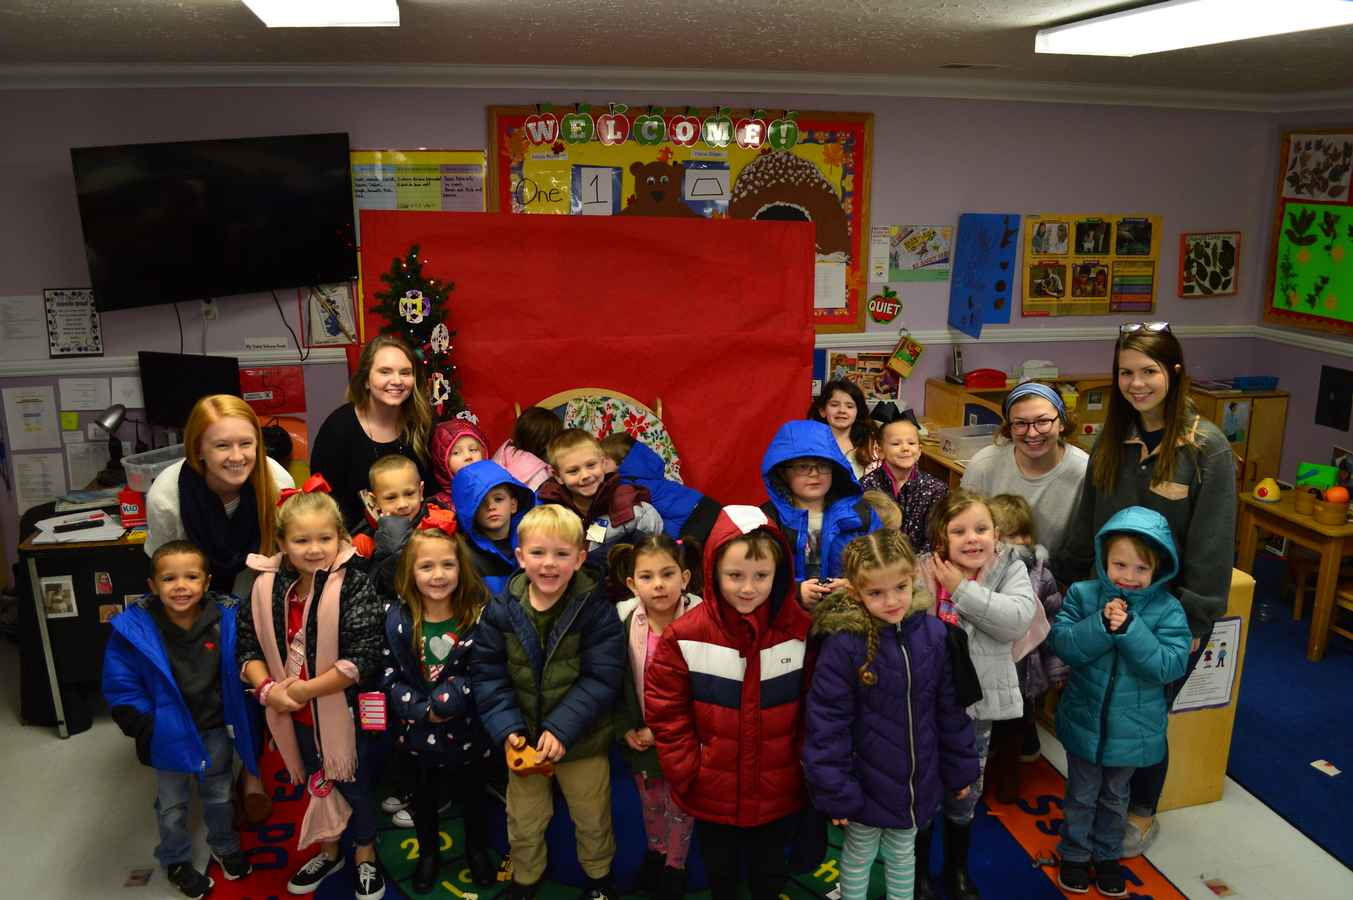 LWC Bonner Scholars Lead Coats for Kids Drive